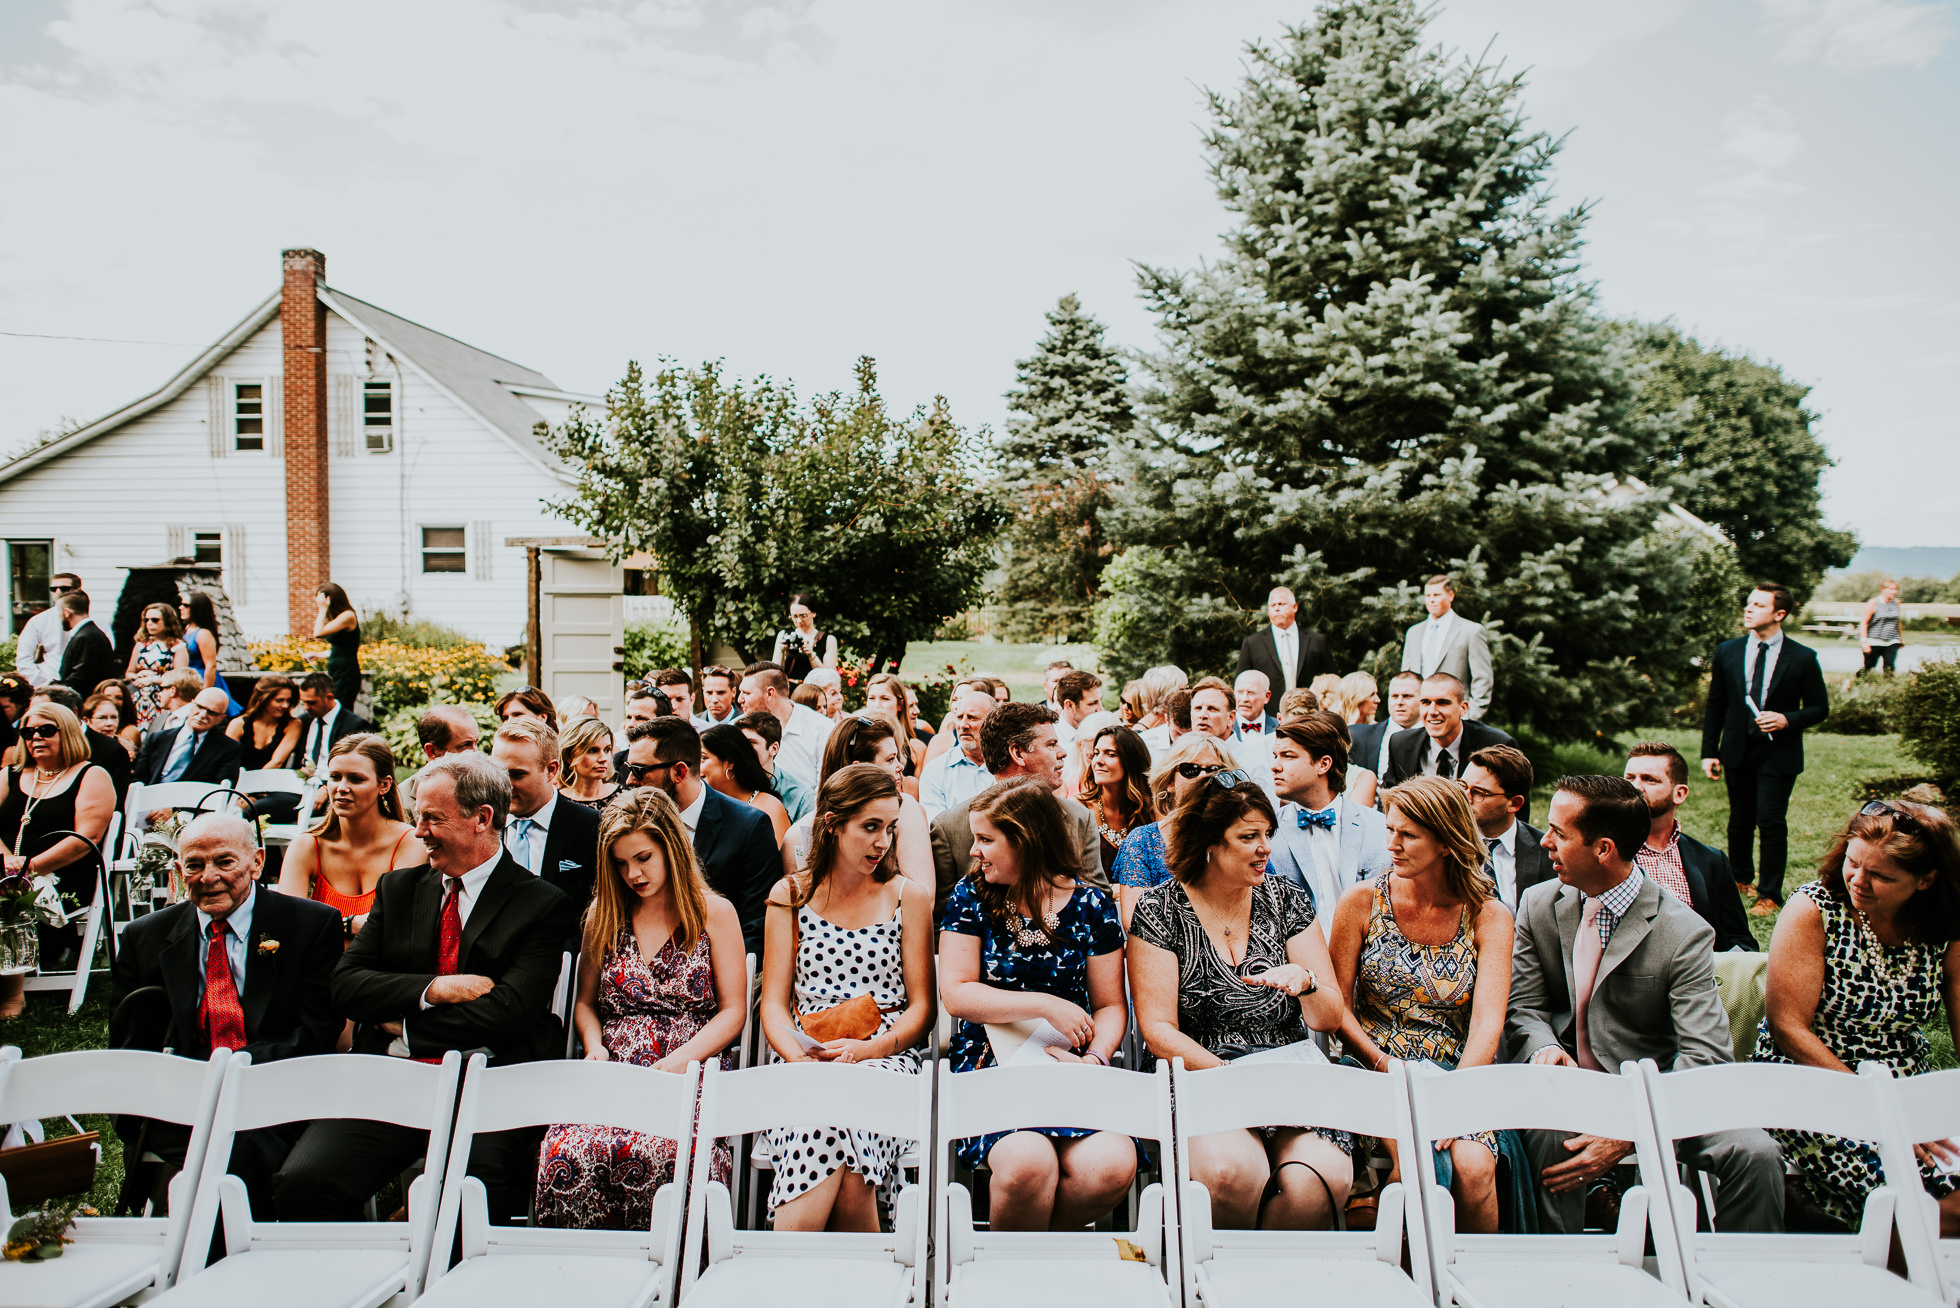 guests seated for ceremony at olde tater barn wedding in central bridge, ny photographed by traverse the tides